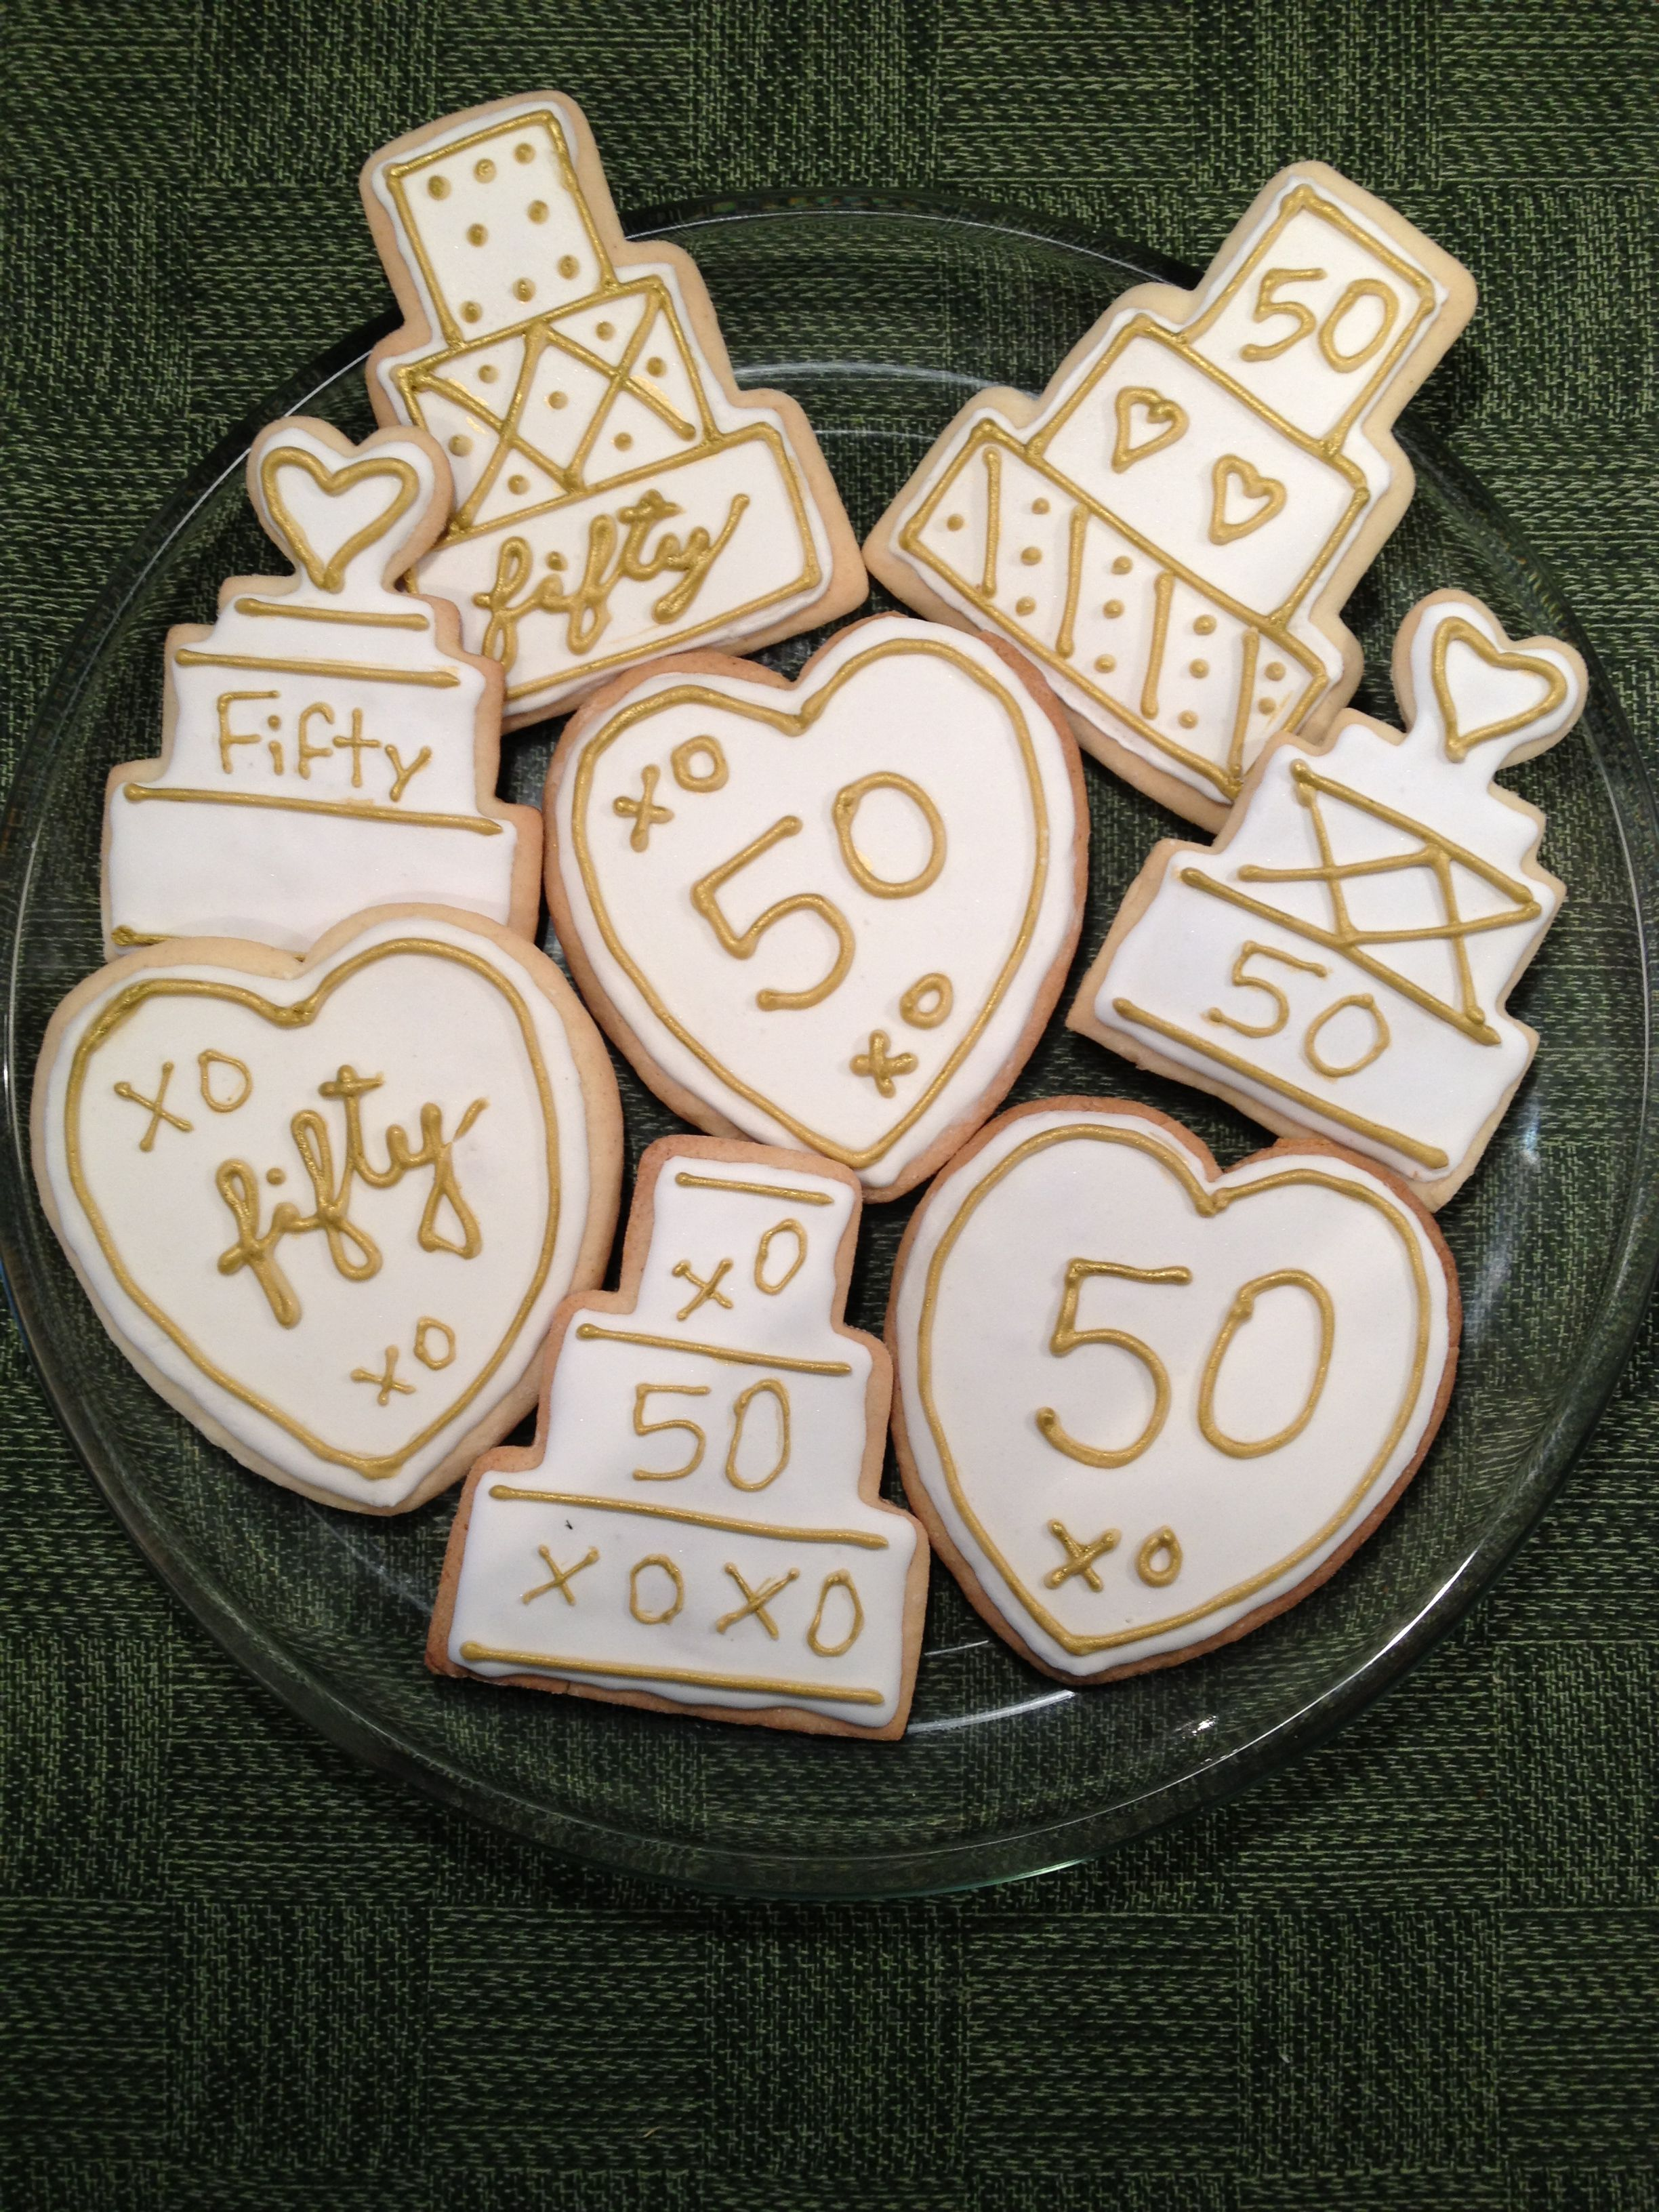 Almond Cookies with royal icing for 50th anniversary.